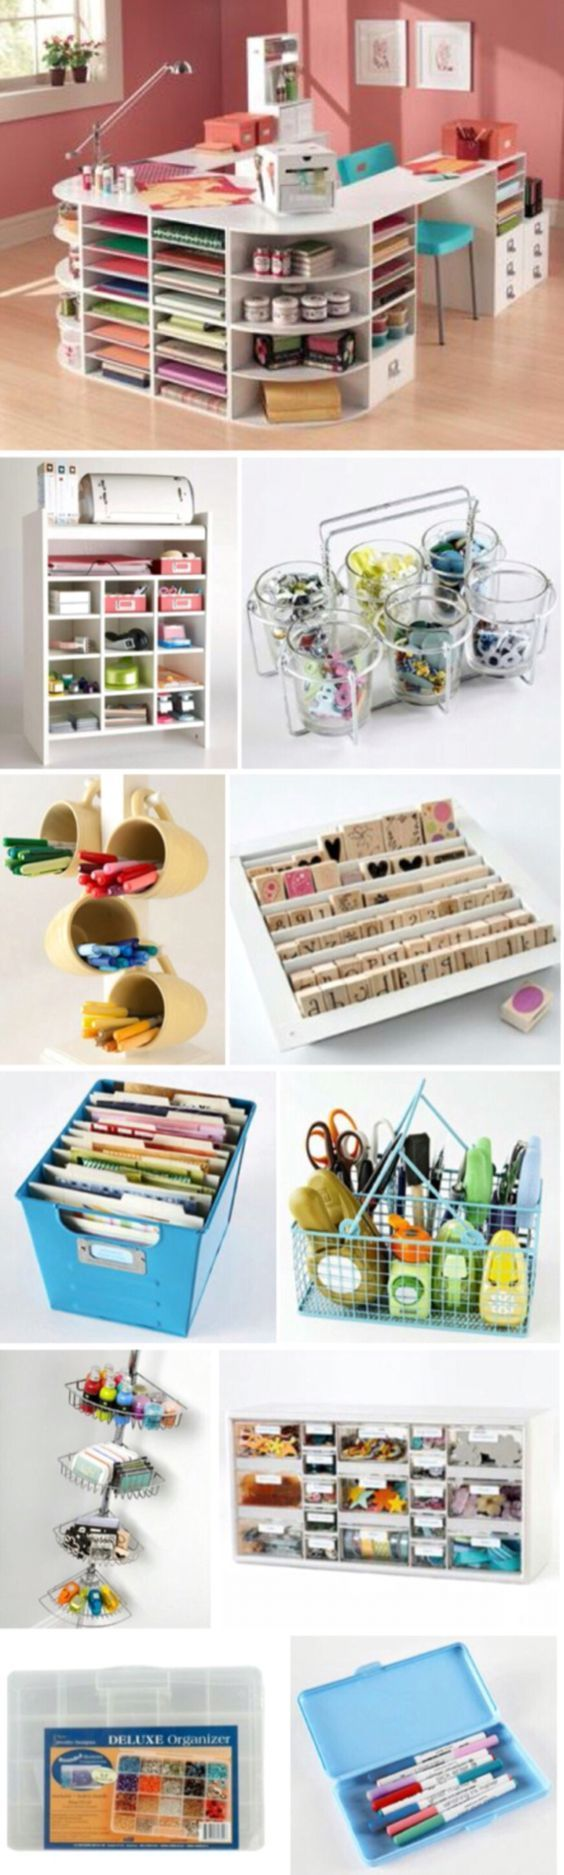 Best 25+ Craft storage ideas on Pinterest | Craft organization ...